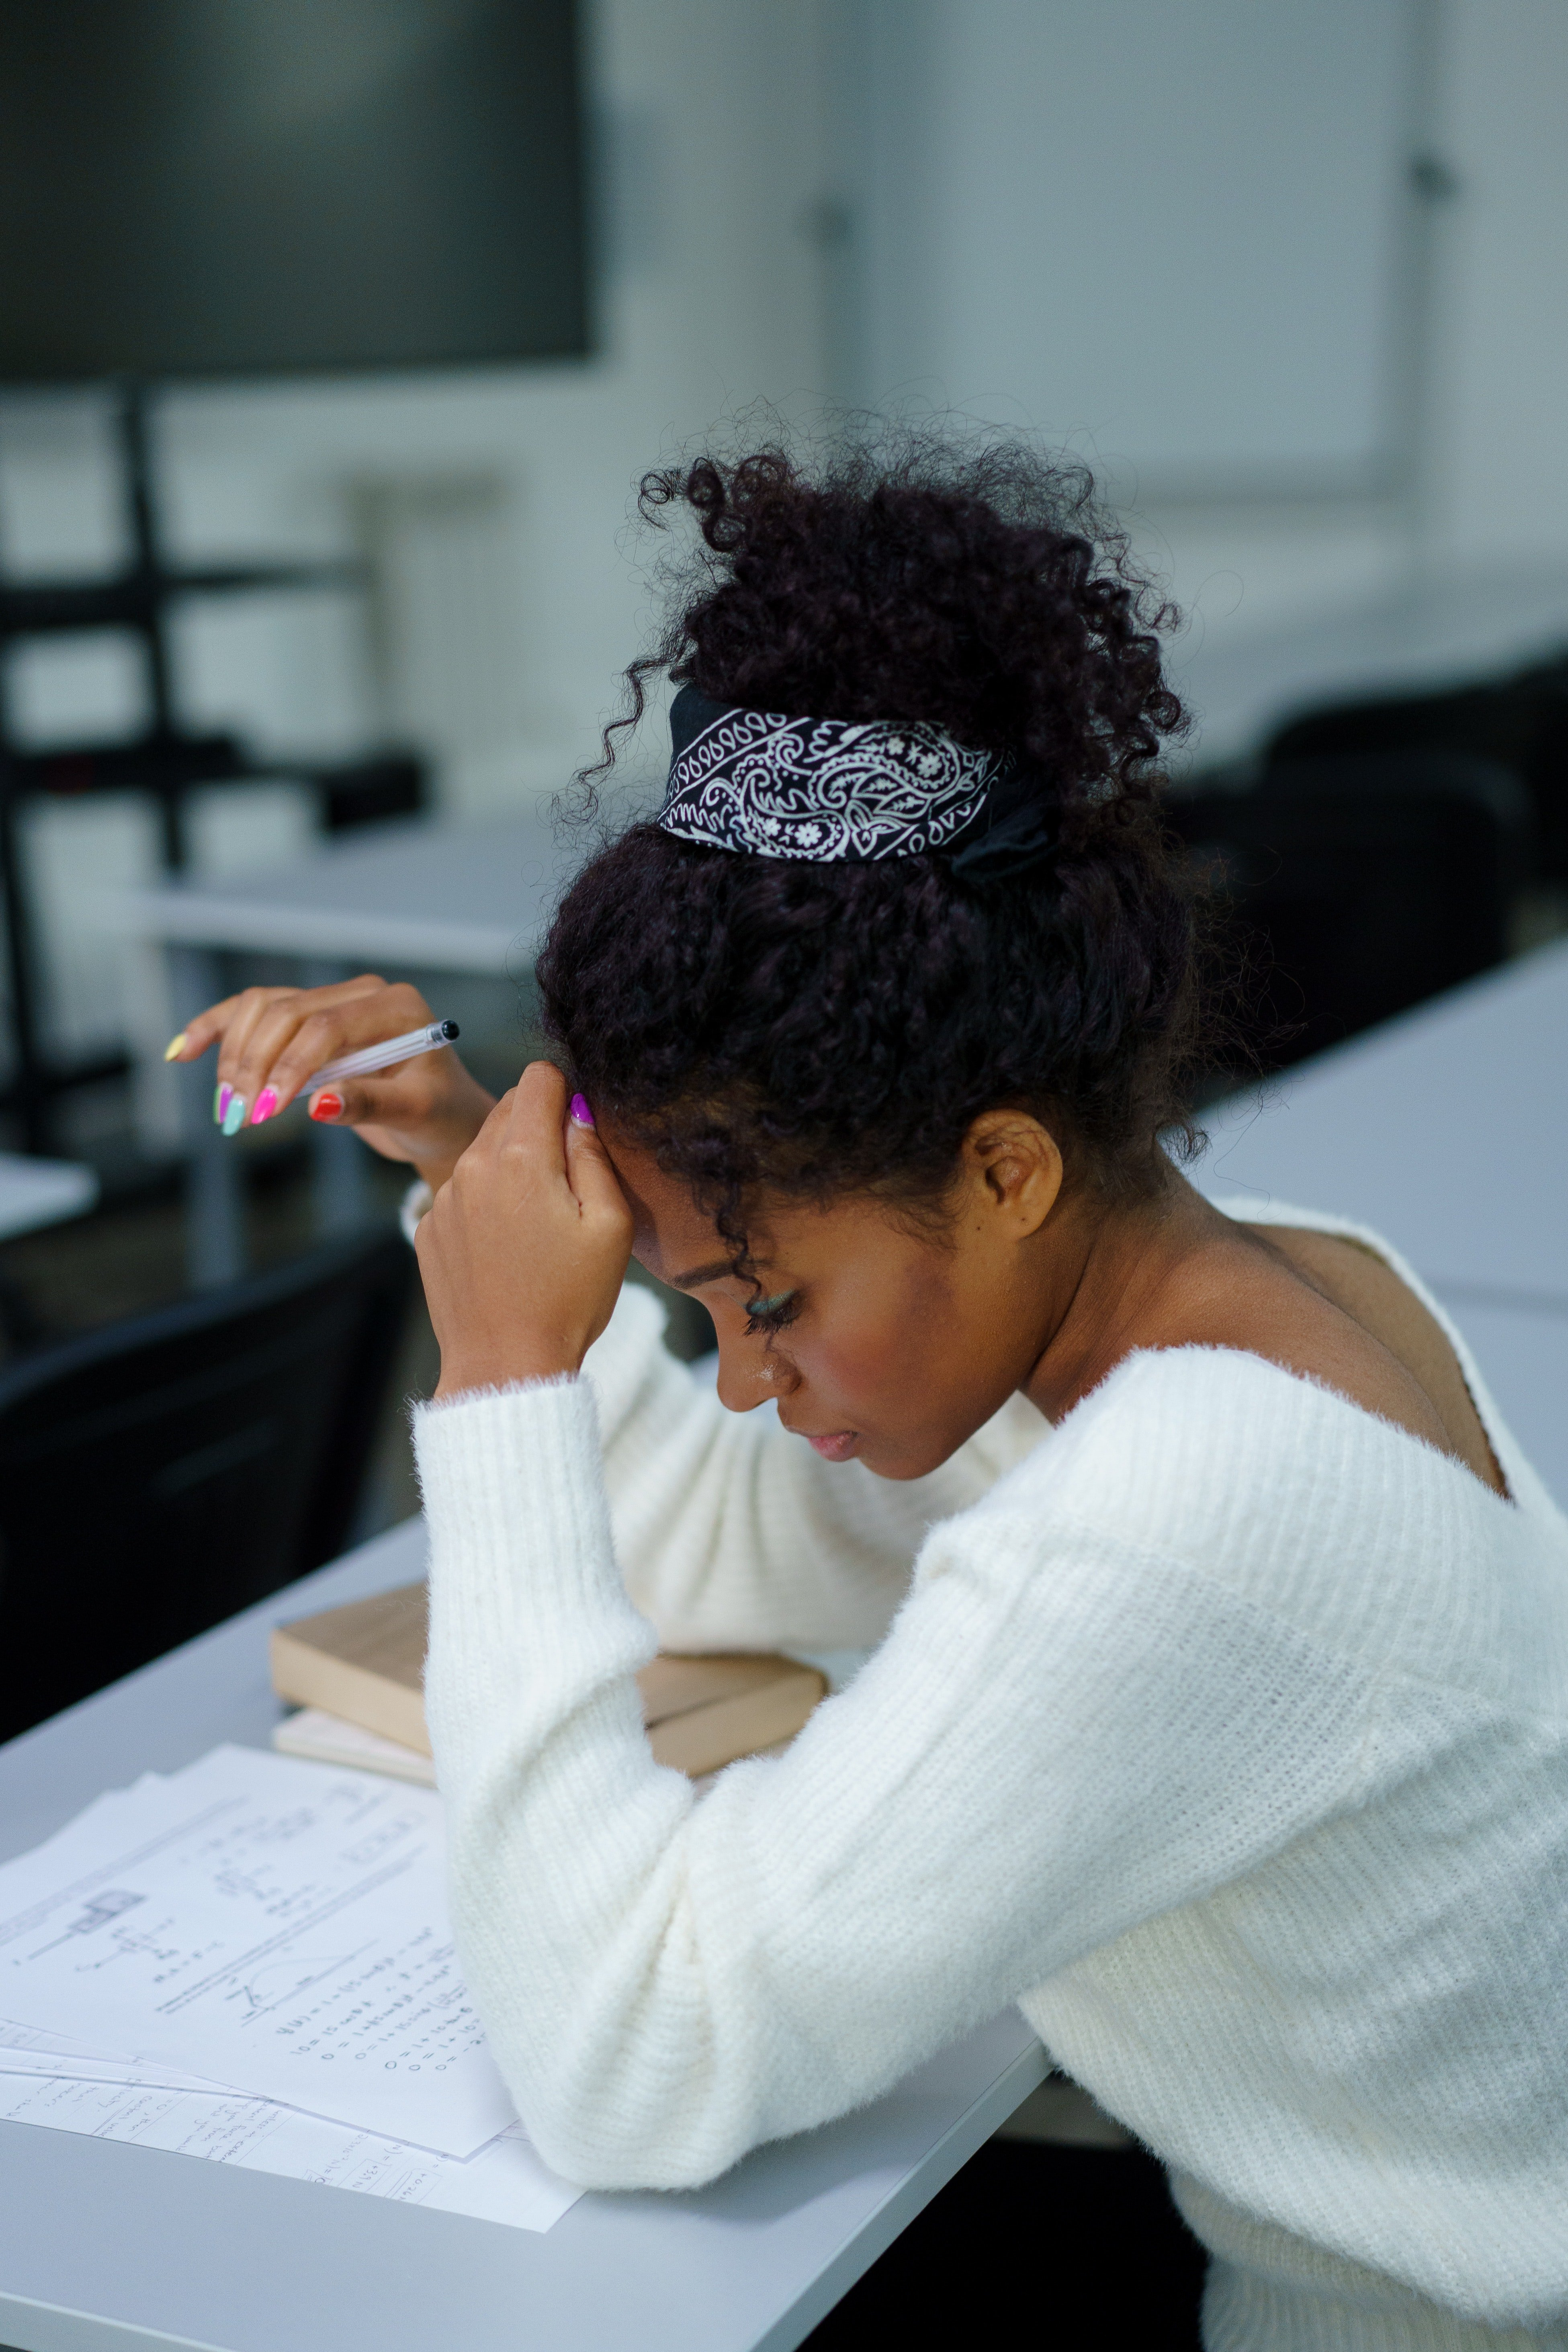 A young lady studying in a class | Photo: Pexels